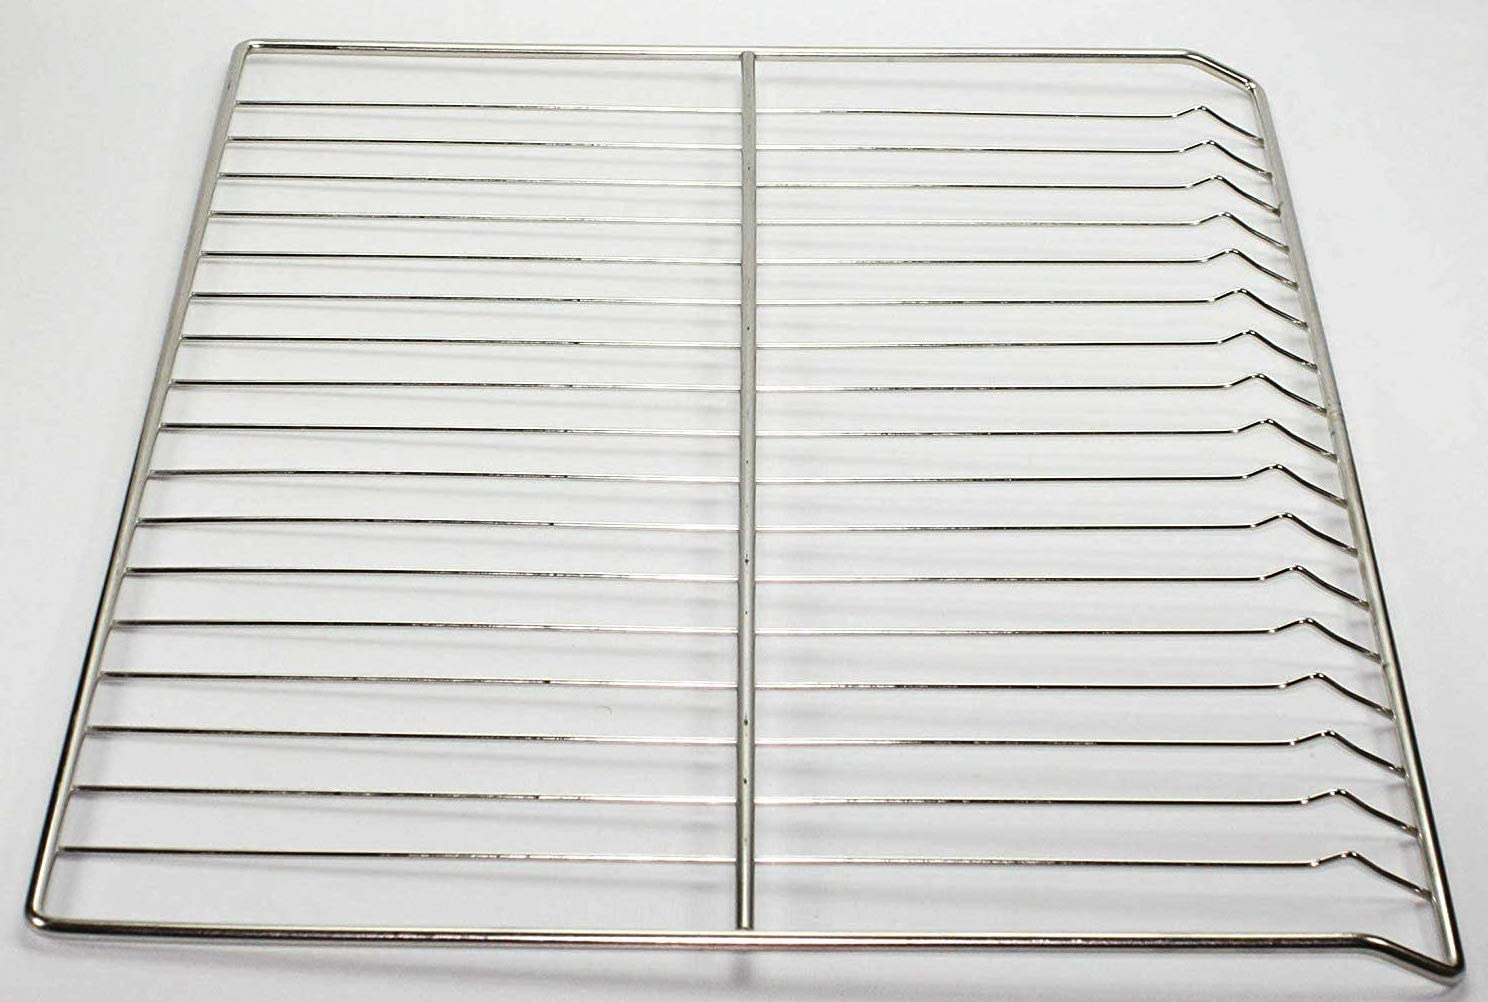 Oven Wire Rack for General Electric Range WB48T10095